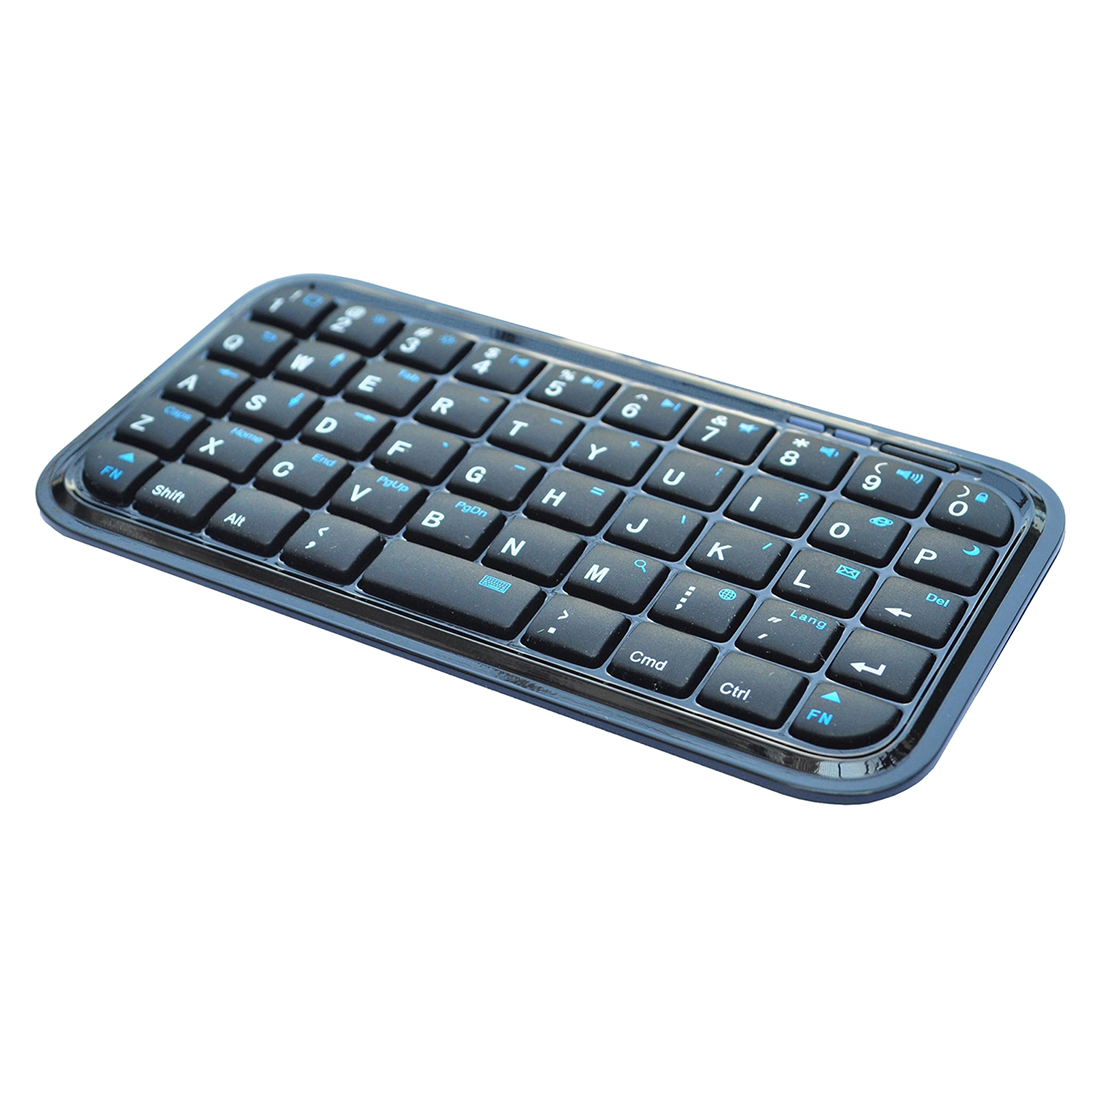 <font><b>Mini</b></font> Bluetooth Wireless <font><b>Keyboard</b></font> for iPhone <font><b>4</b></font> <font><b>iPad</b></font> PDA MAC OS PS3 Droid Smart Phones PC Computers Bluetooth Portable <font><b>Keyboard</b></font> image